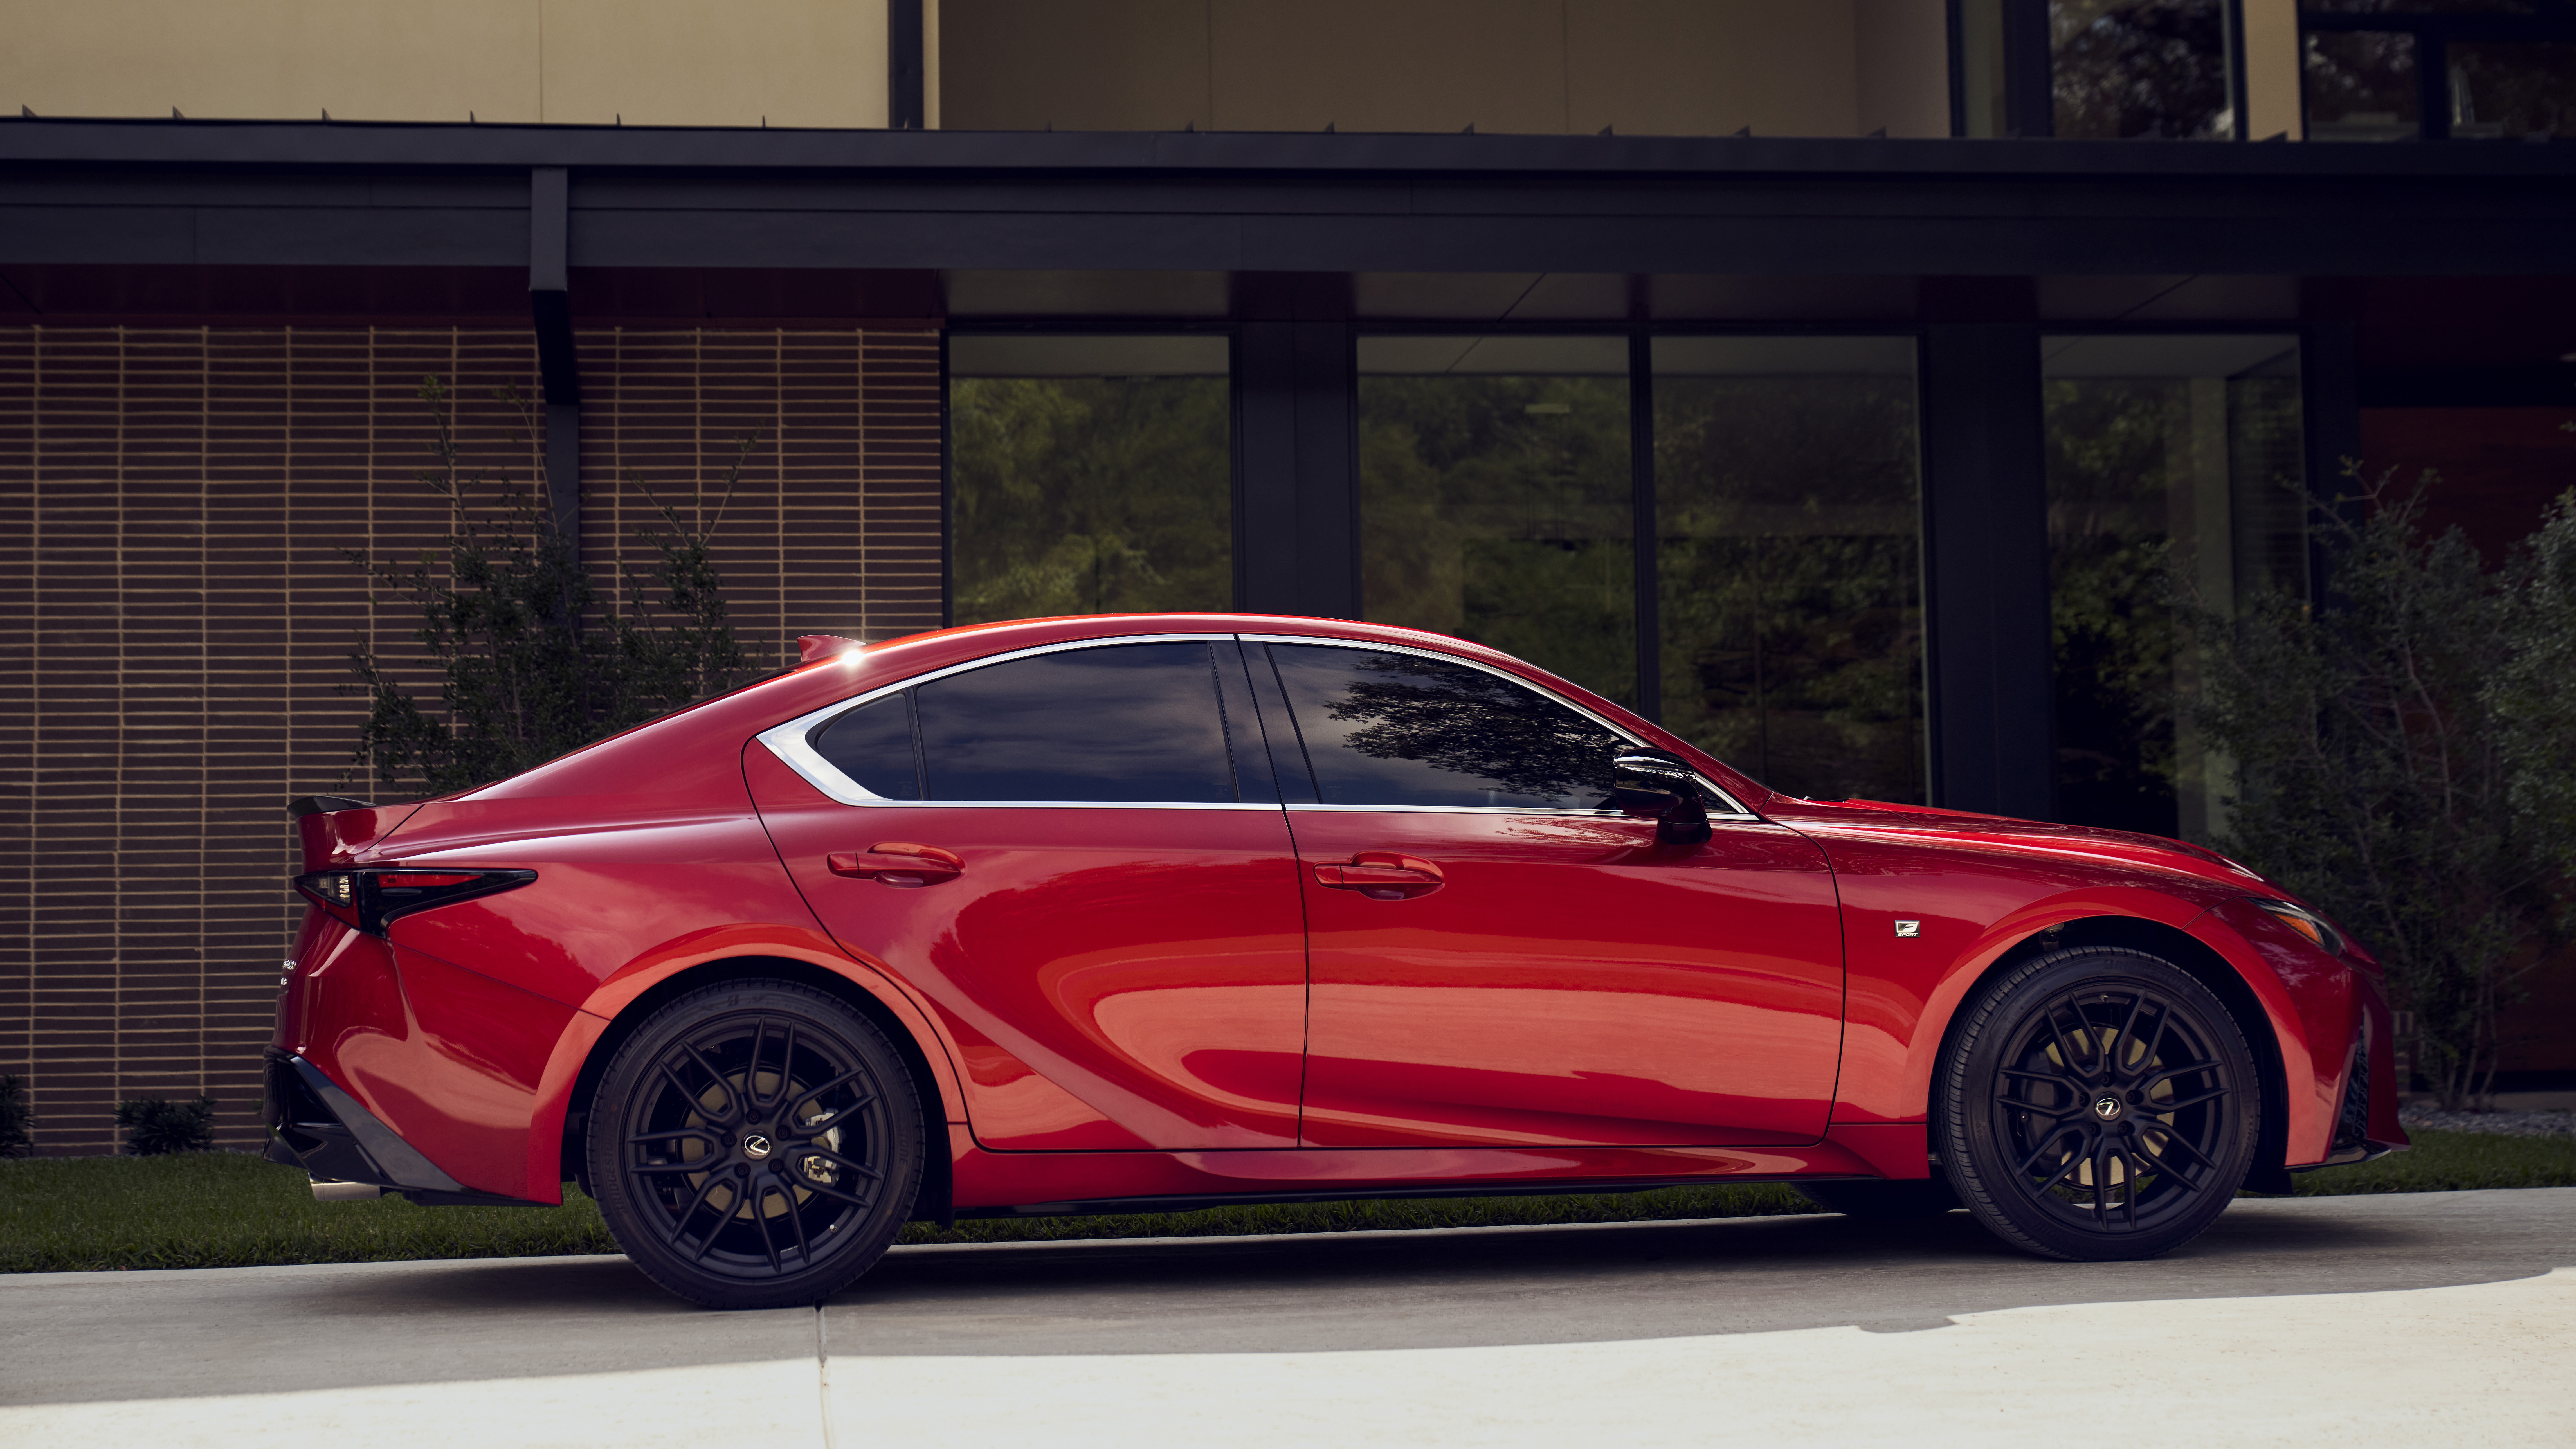 2021 lexus is pricing, specifications announced   autoblog